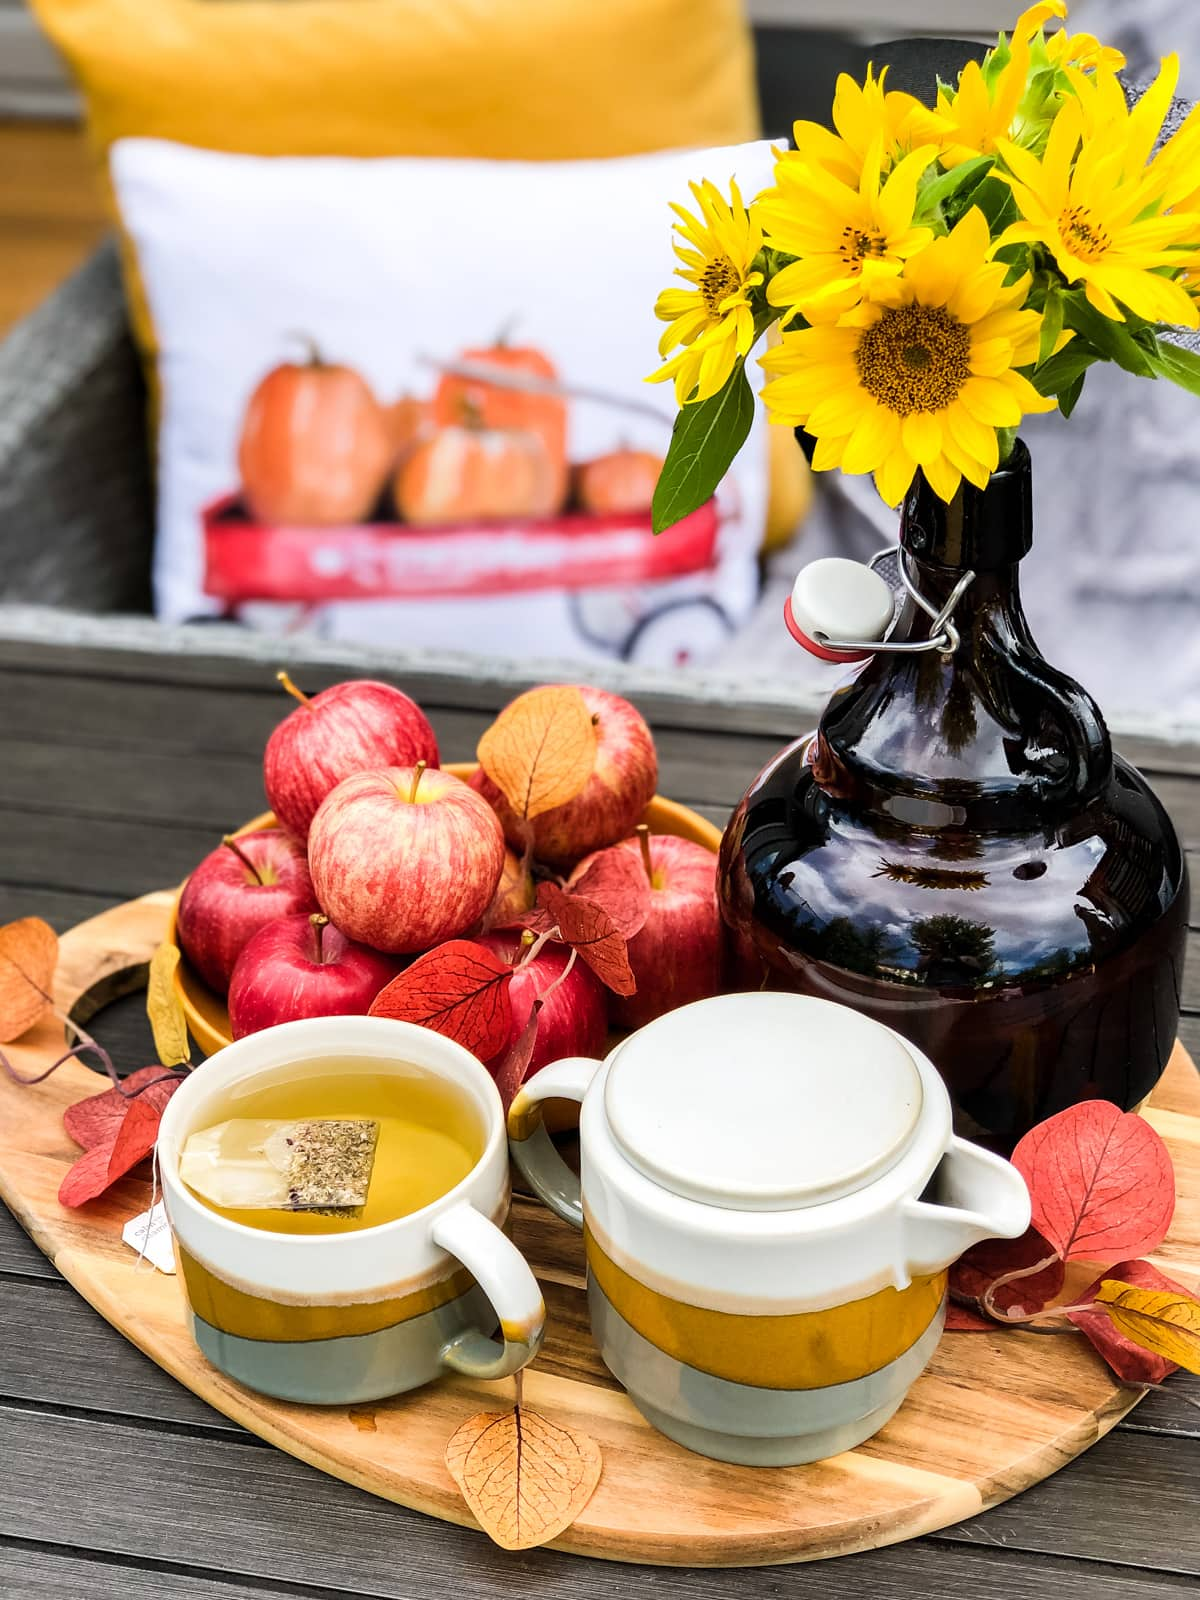 Apples, sunflowers and a tea cup